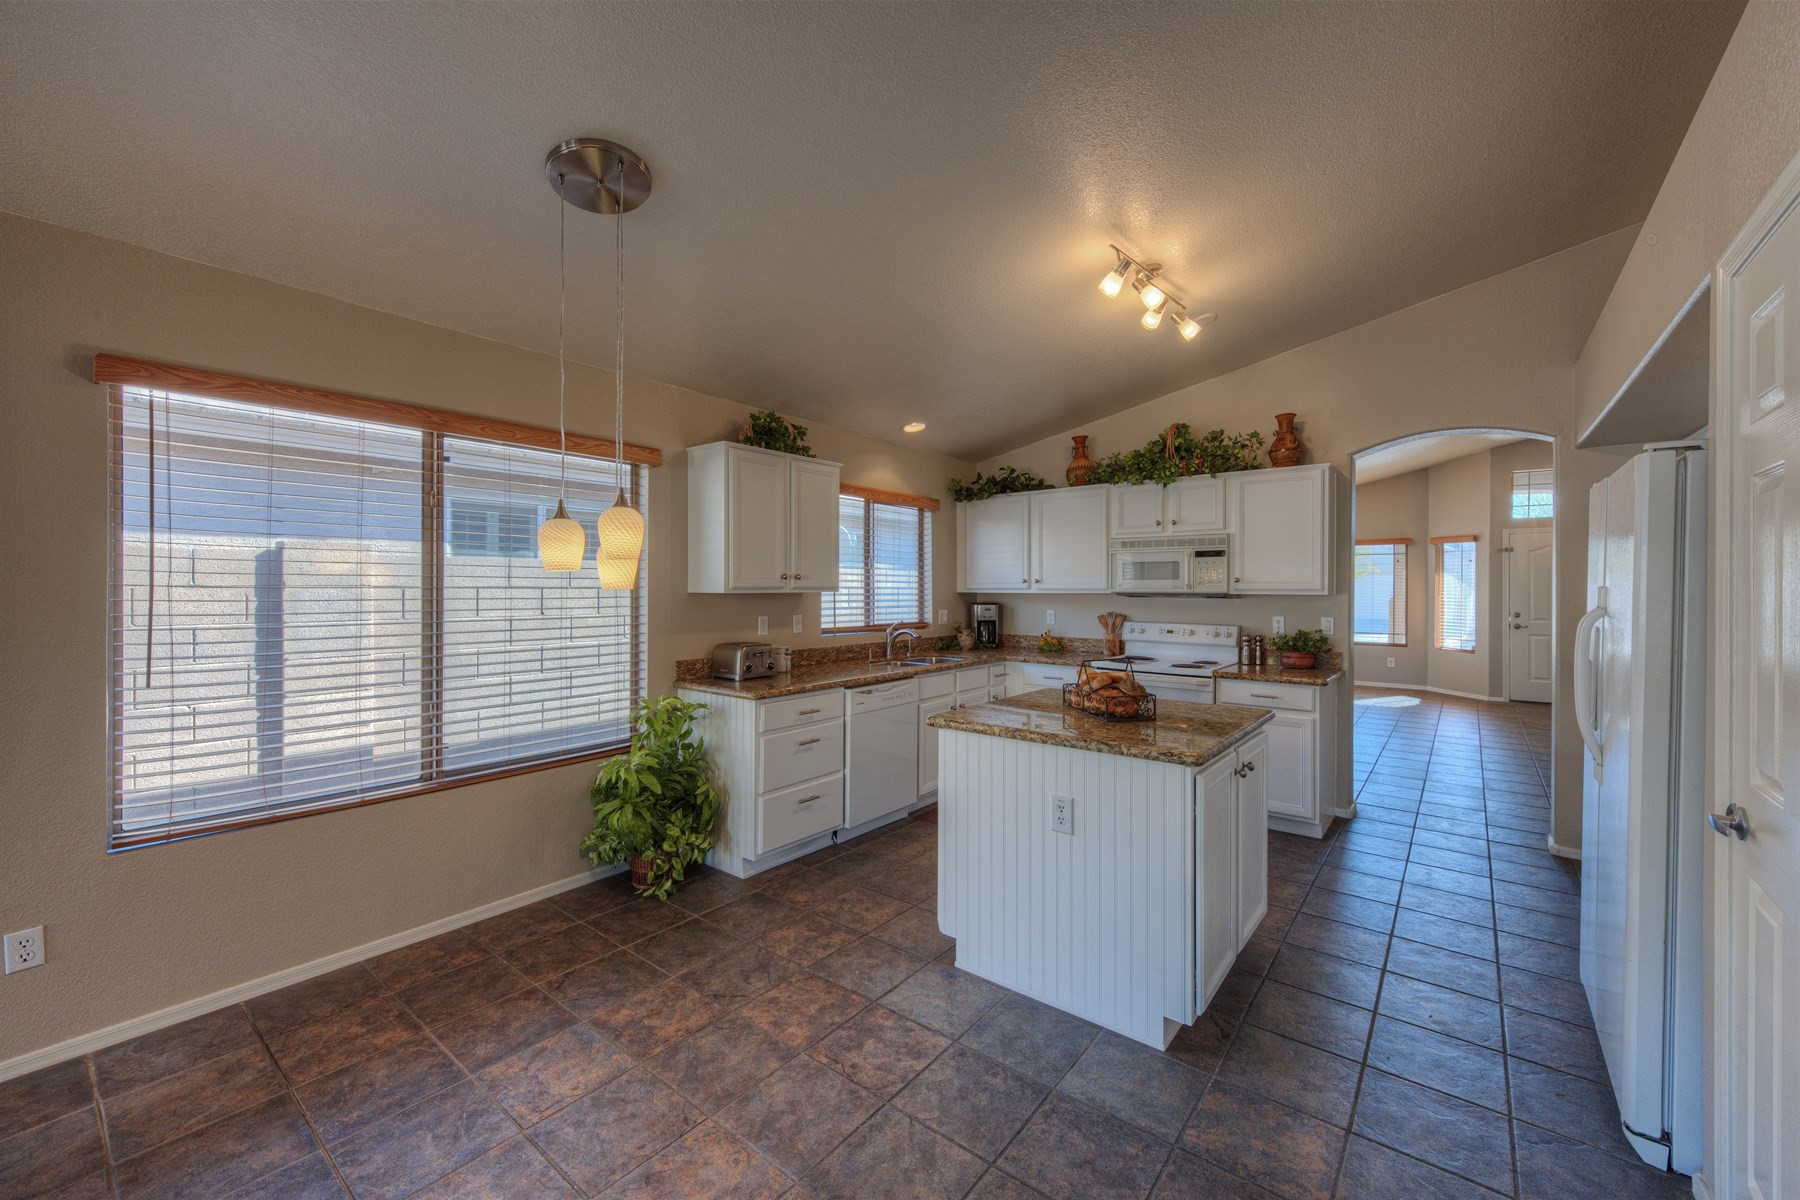 Single Family Home for Sale at Meticulously maintained home in the desirable Tatum Highlands 4322 E Tether Trl Phoenix, Arizona, 85050 United States